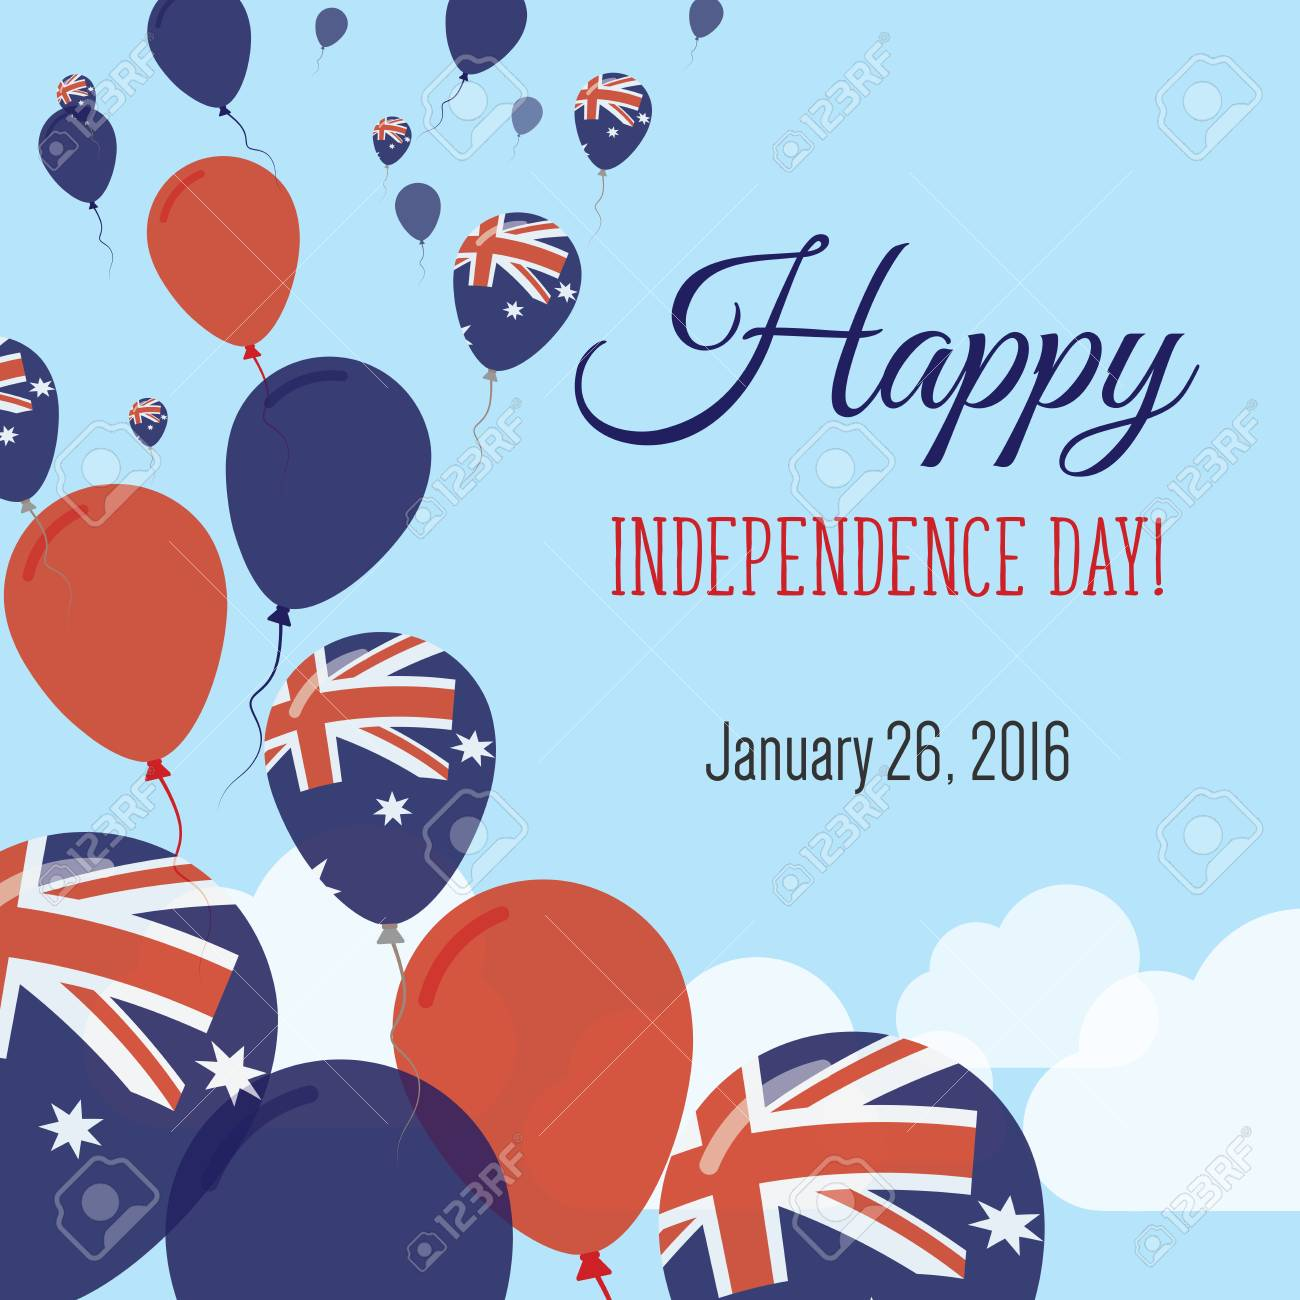 Independence day flat greeting card australia independence day independence day flat greeting card australia independence day australian flag balloons patriotic poster m4hsunfo